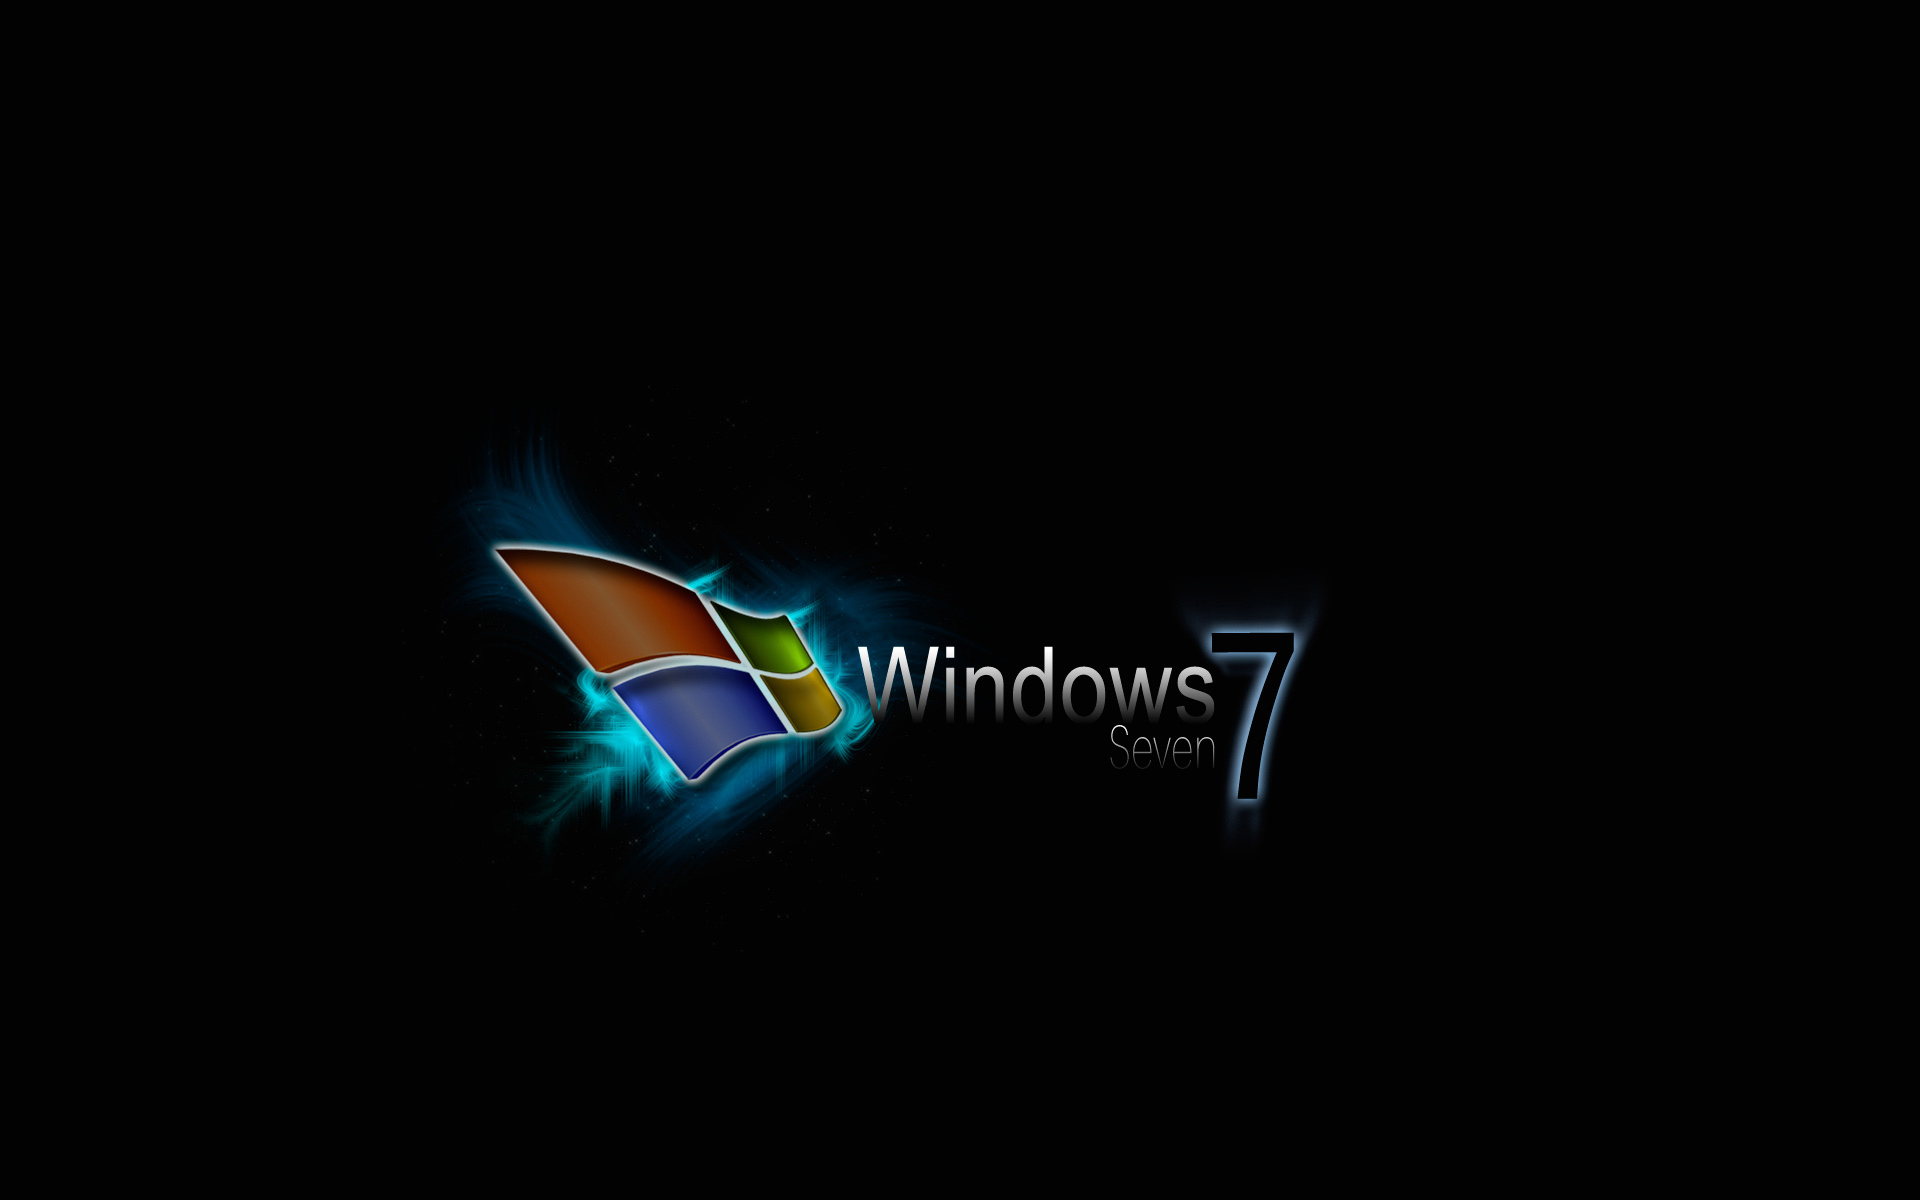 Windows 7 Wallpapers, Pictures, Images